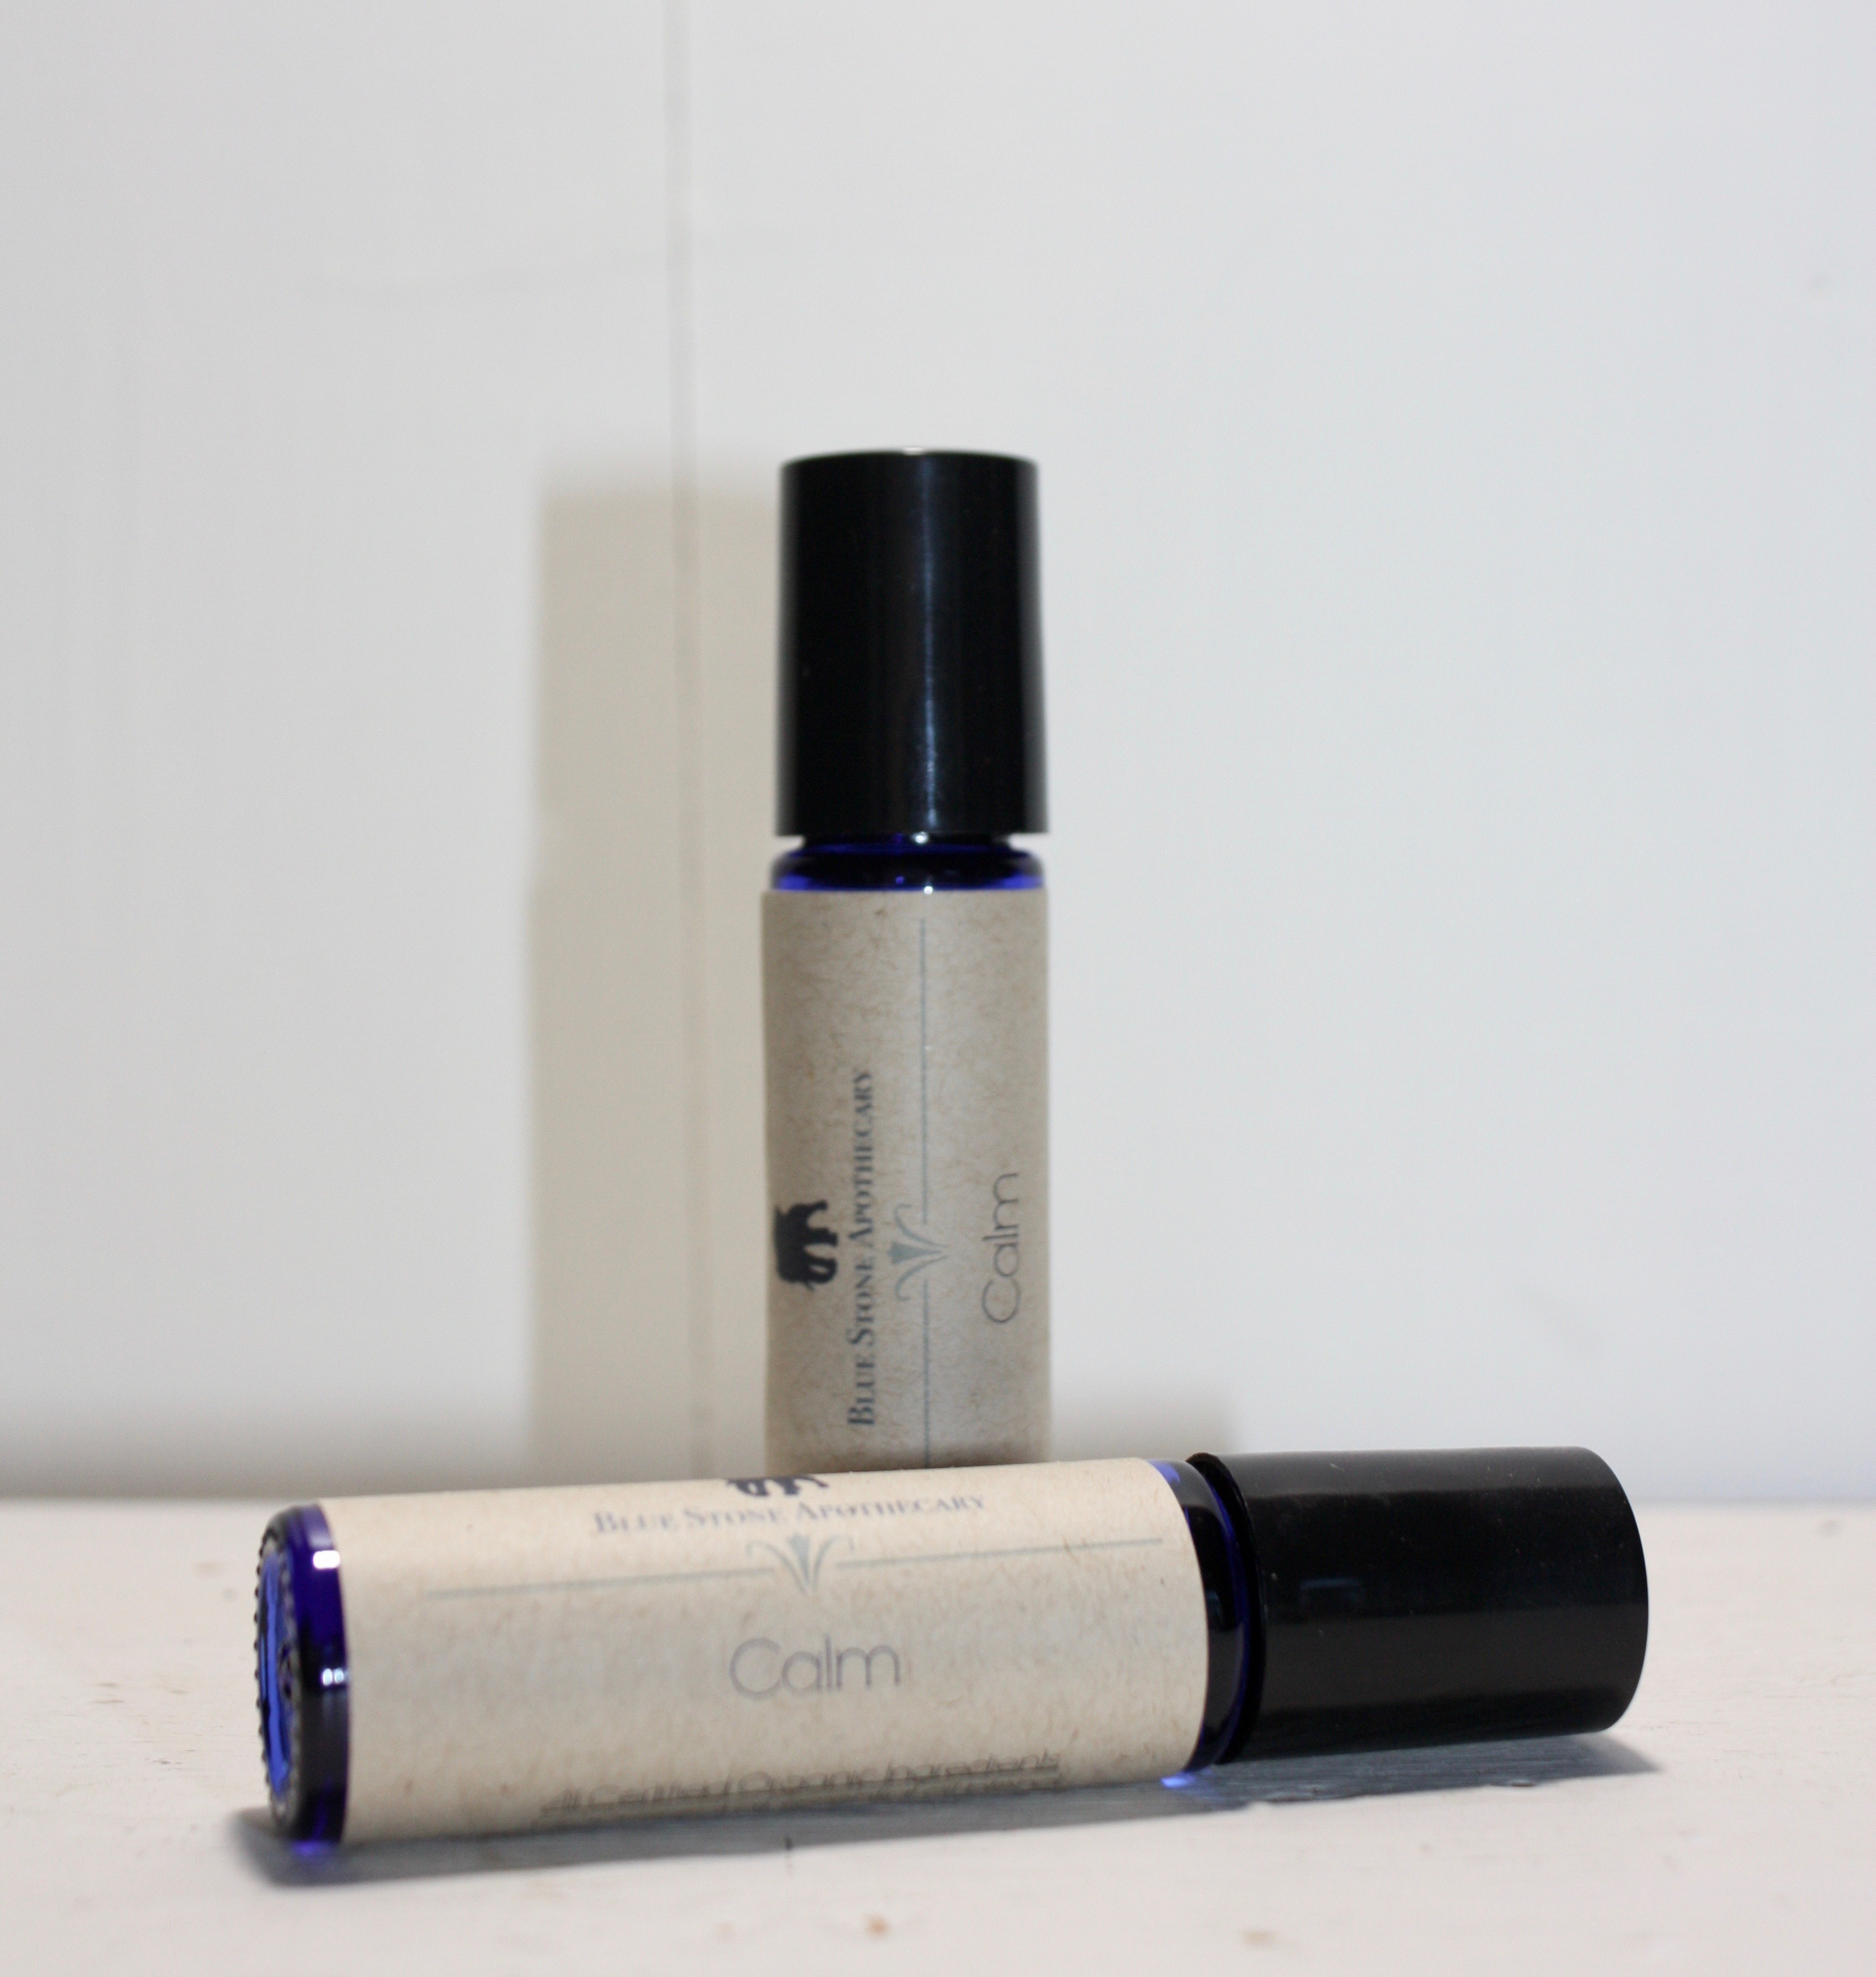 Organic Calm Essential Oil Roll On Blend Blue Stone Apothecary